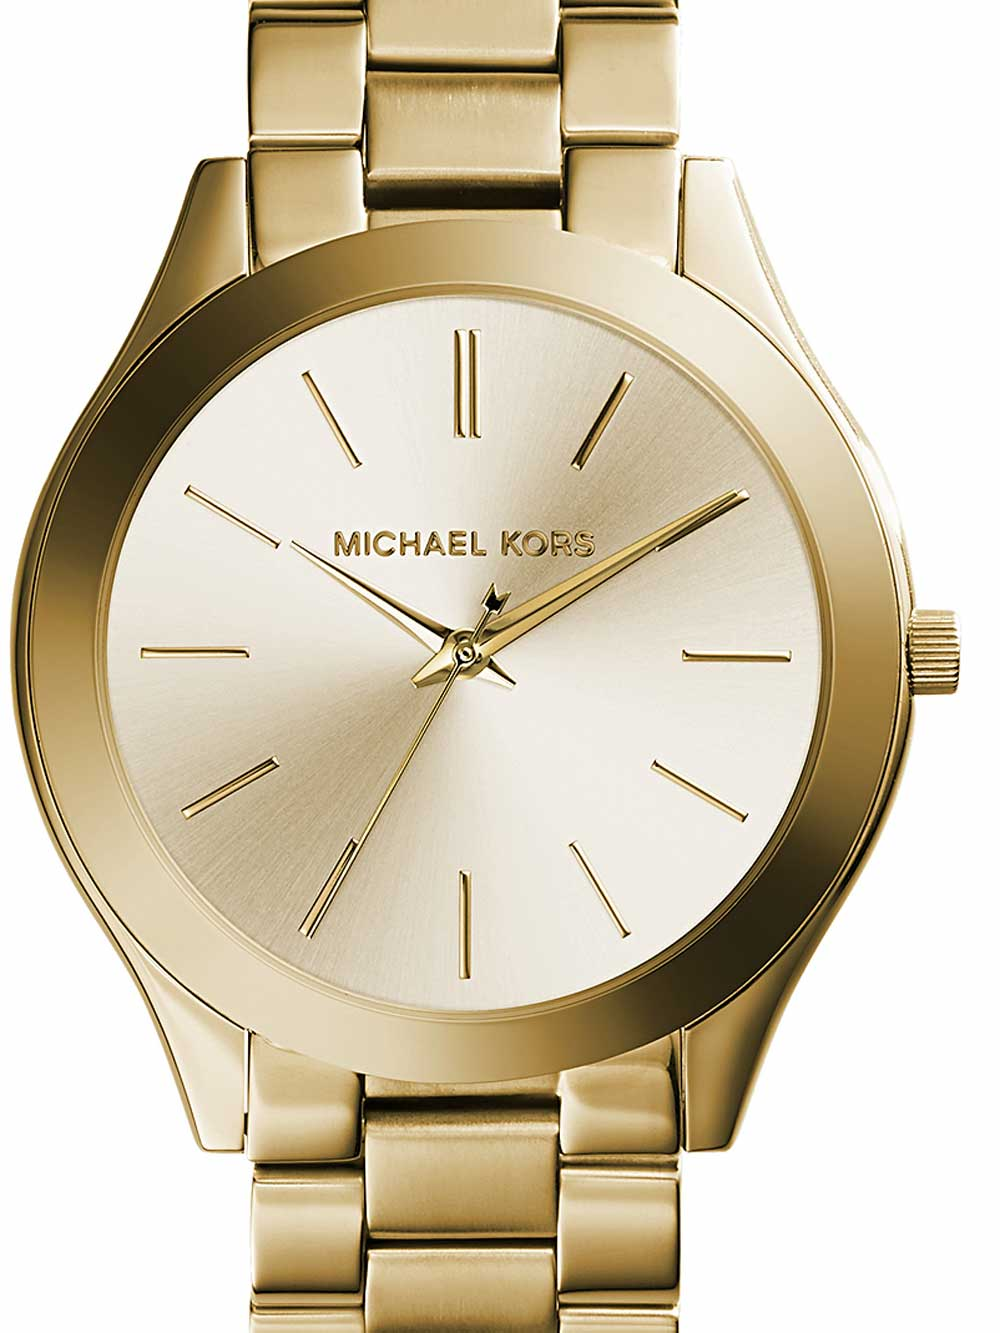 Michael Kors MK3179 Runway Damen 40mm 5ATM